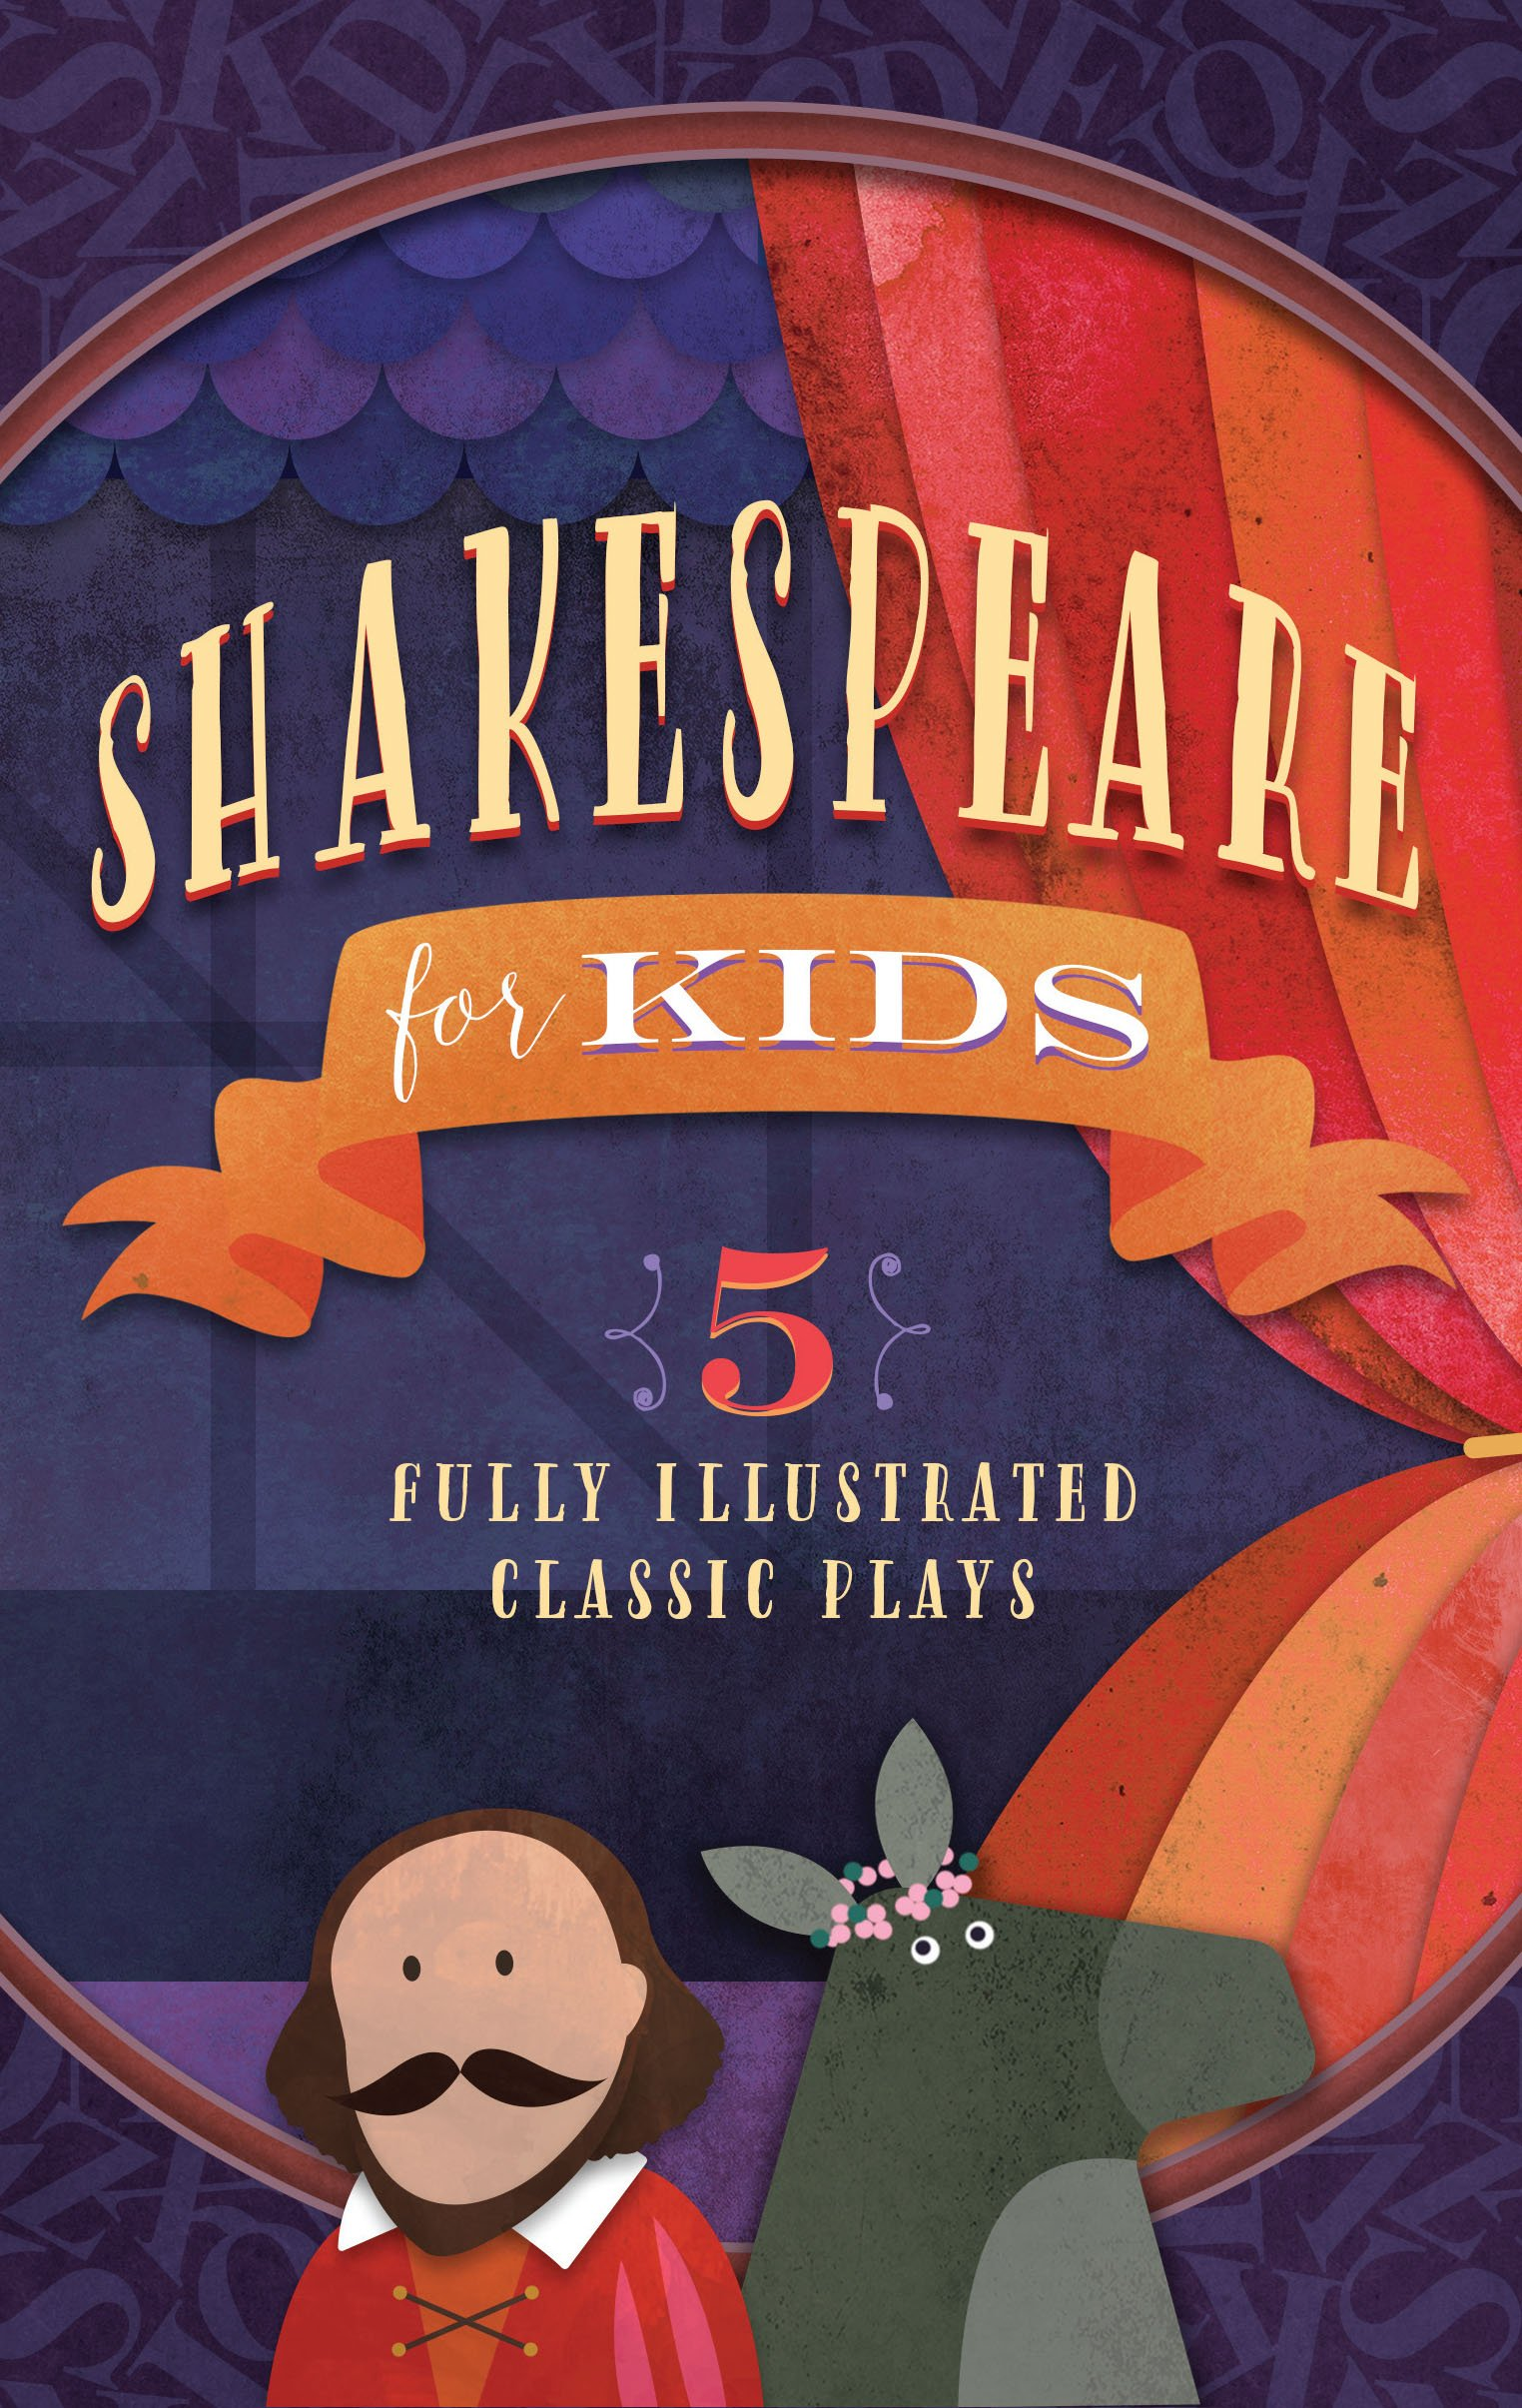 Shakespeare for Kids: 5 Classic Works Adapted for Kids: A Midsummer Night's Dream, Macbeth, Much Ado About Nothing, All's Well that Ends Well, and The Tempest pdf epub